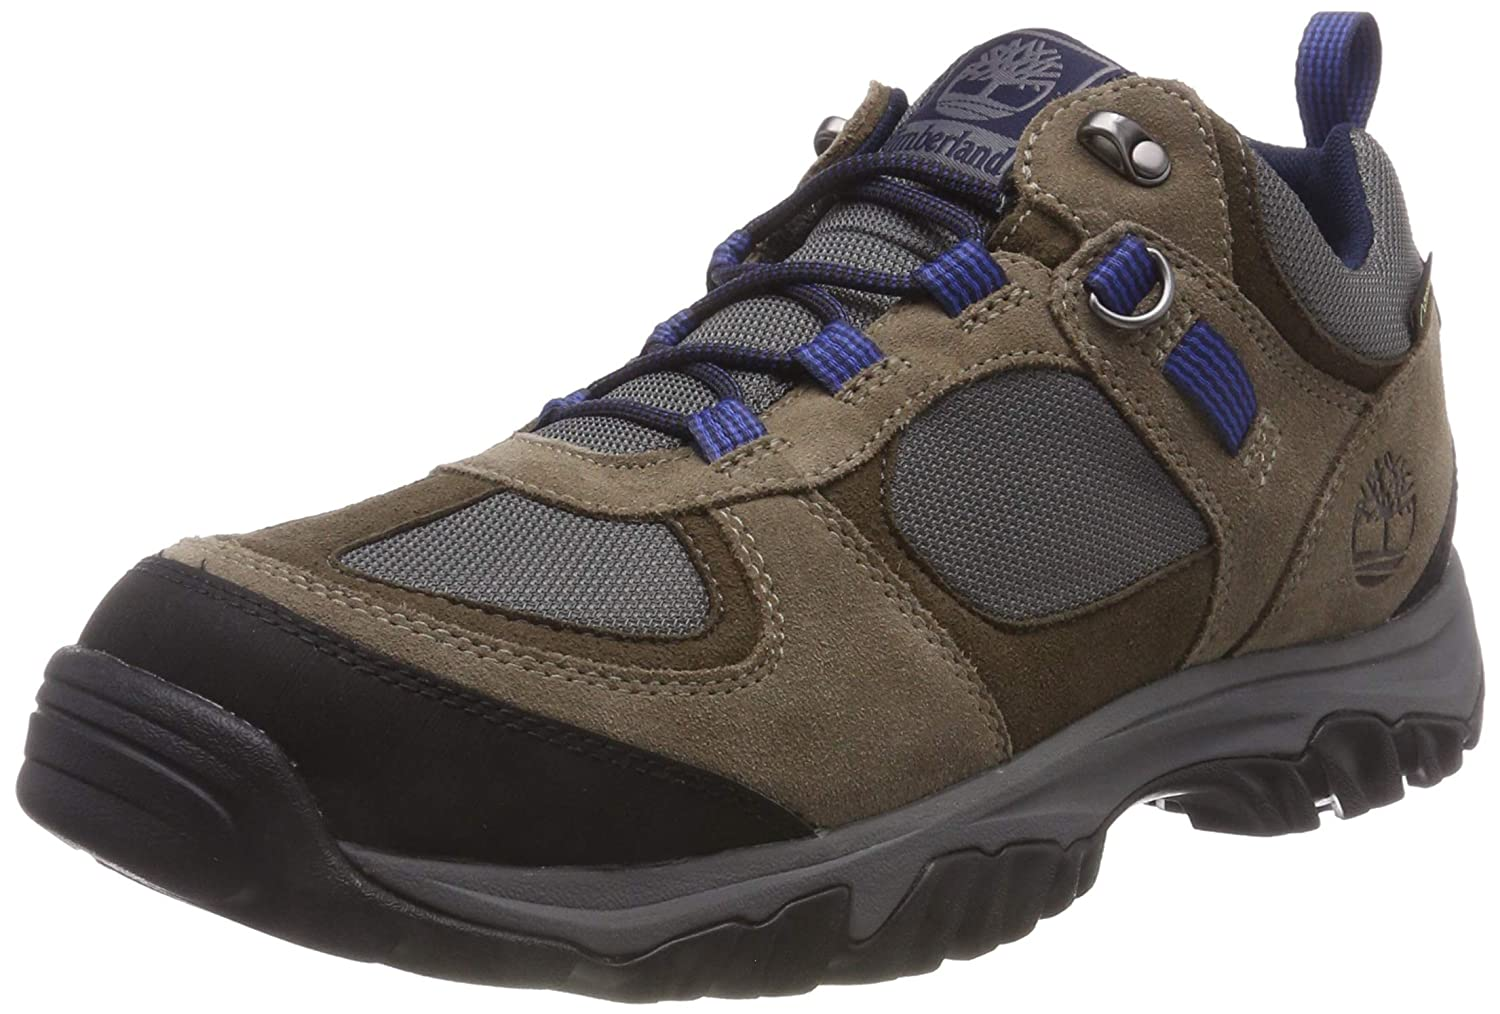 TALLA 43.5 EU. Timberland MT. Major Waterproof, Zapatos de Cordones Oxford para Hombre